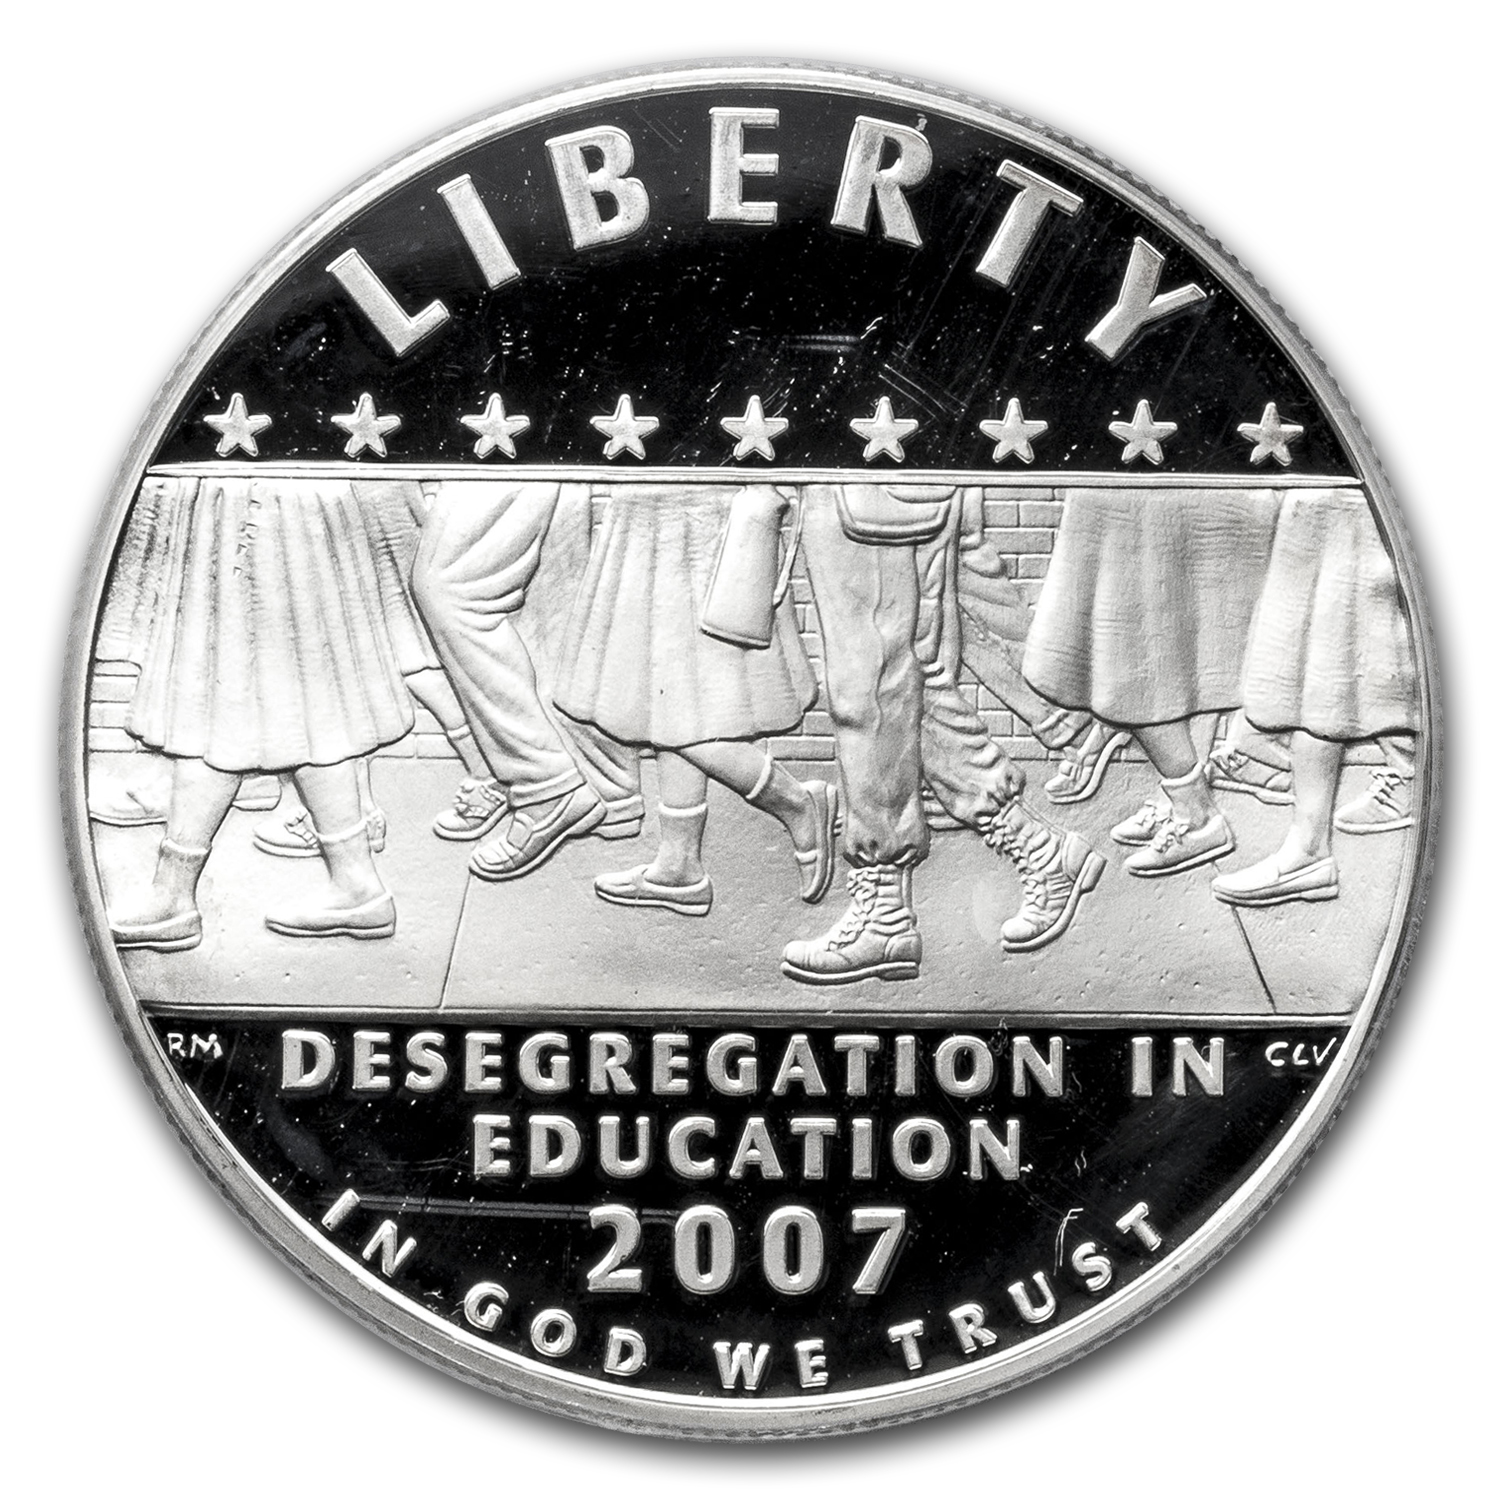 2007-P School Desegregation $1 Silver Commem PR-69 PCGS